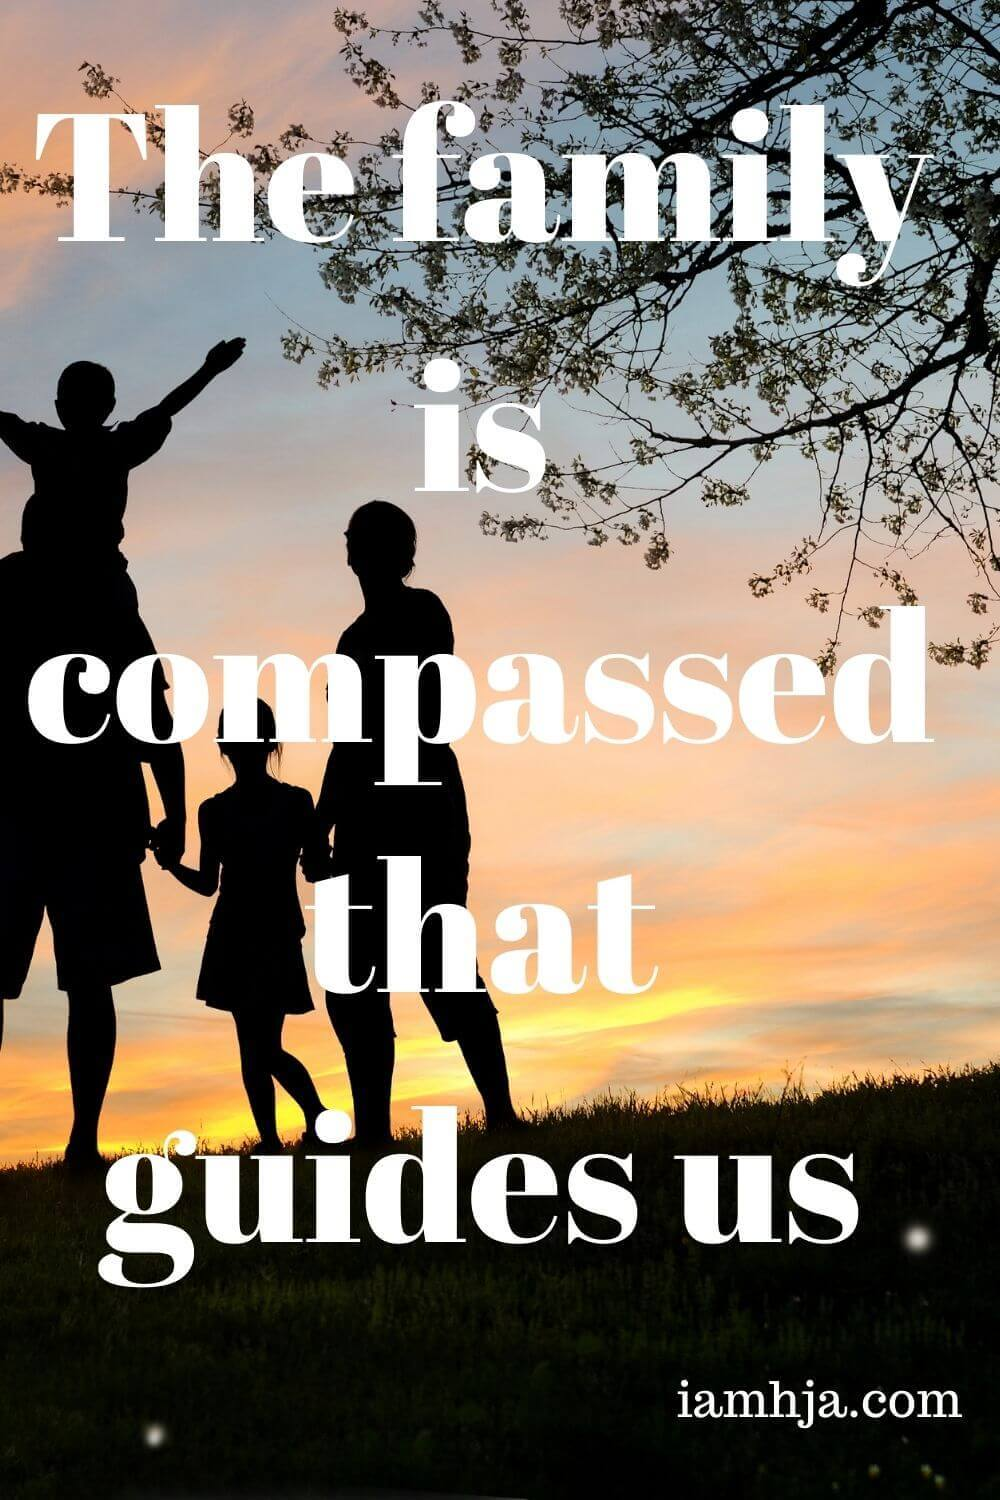 The family is compassed that guides us